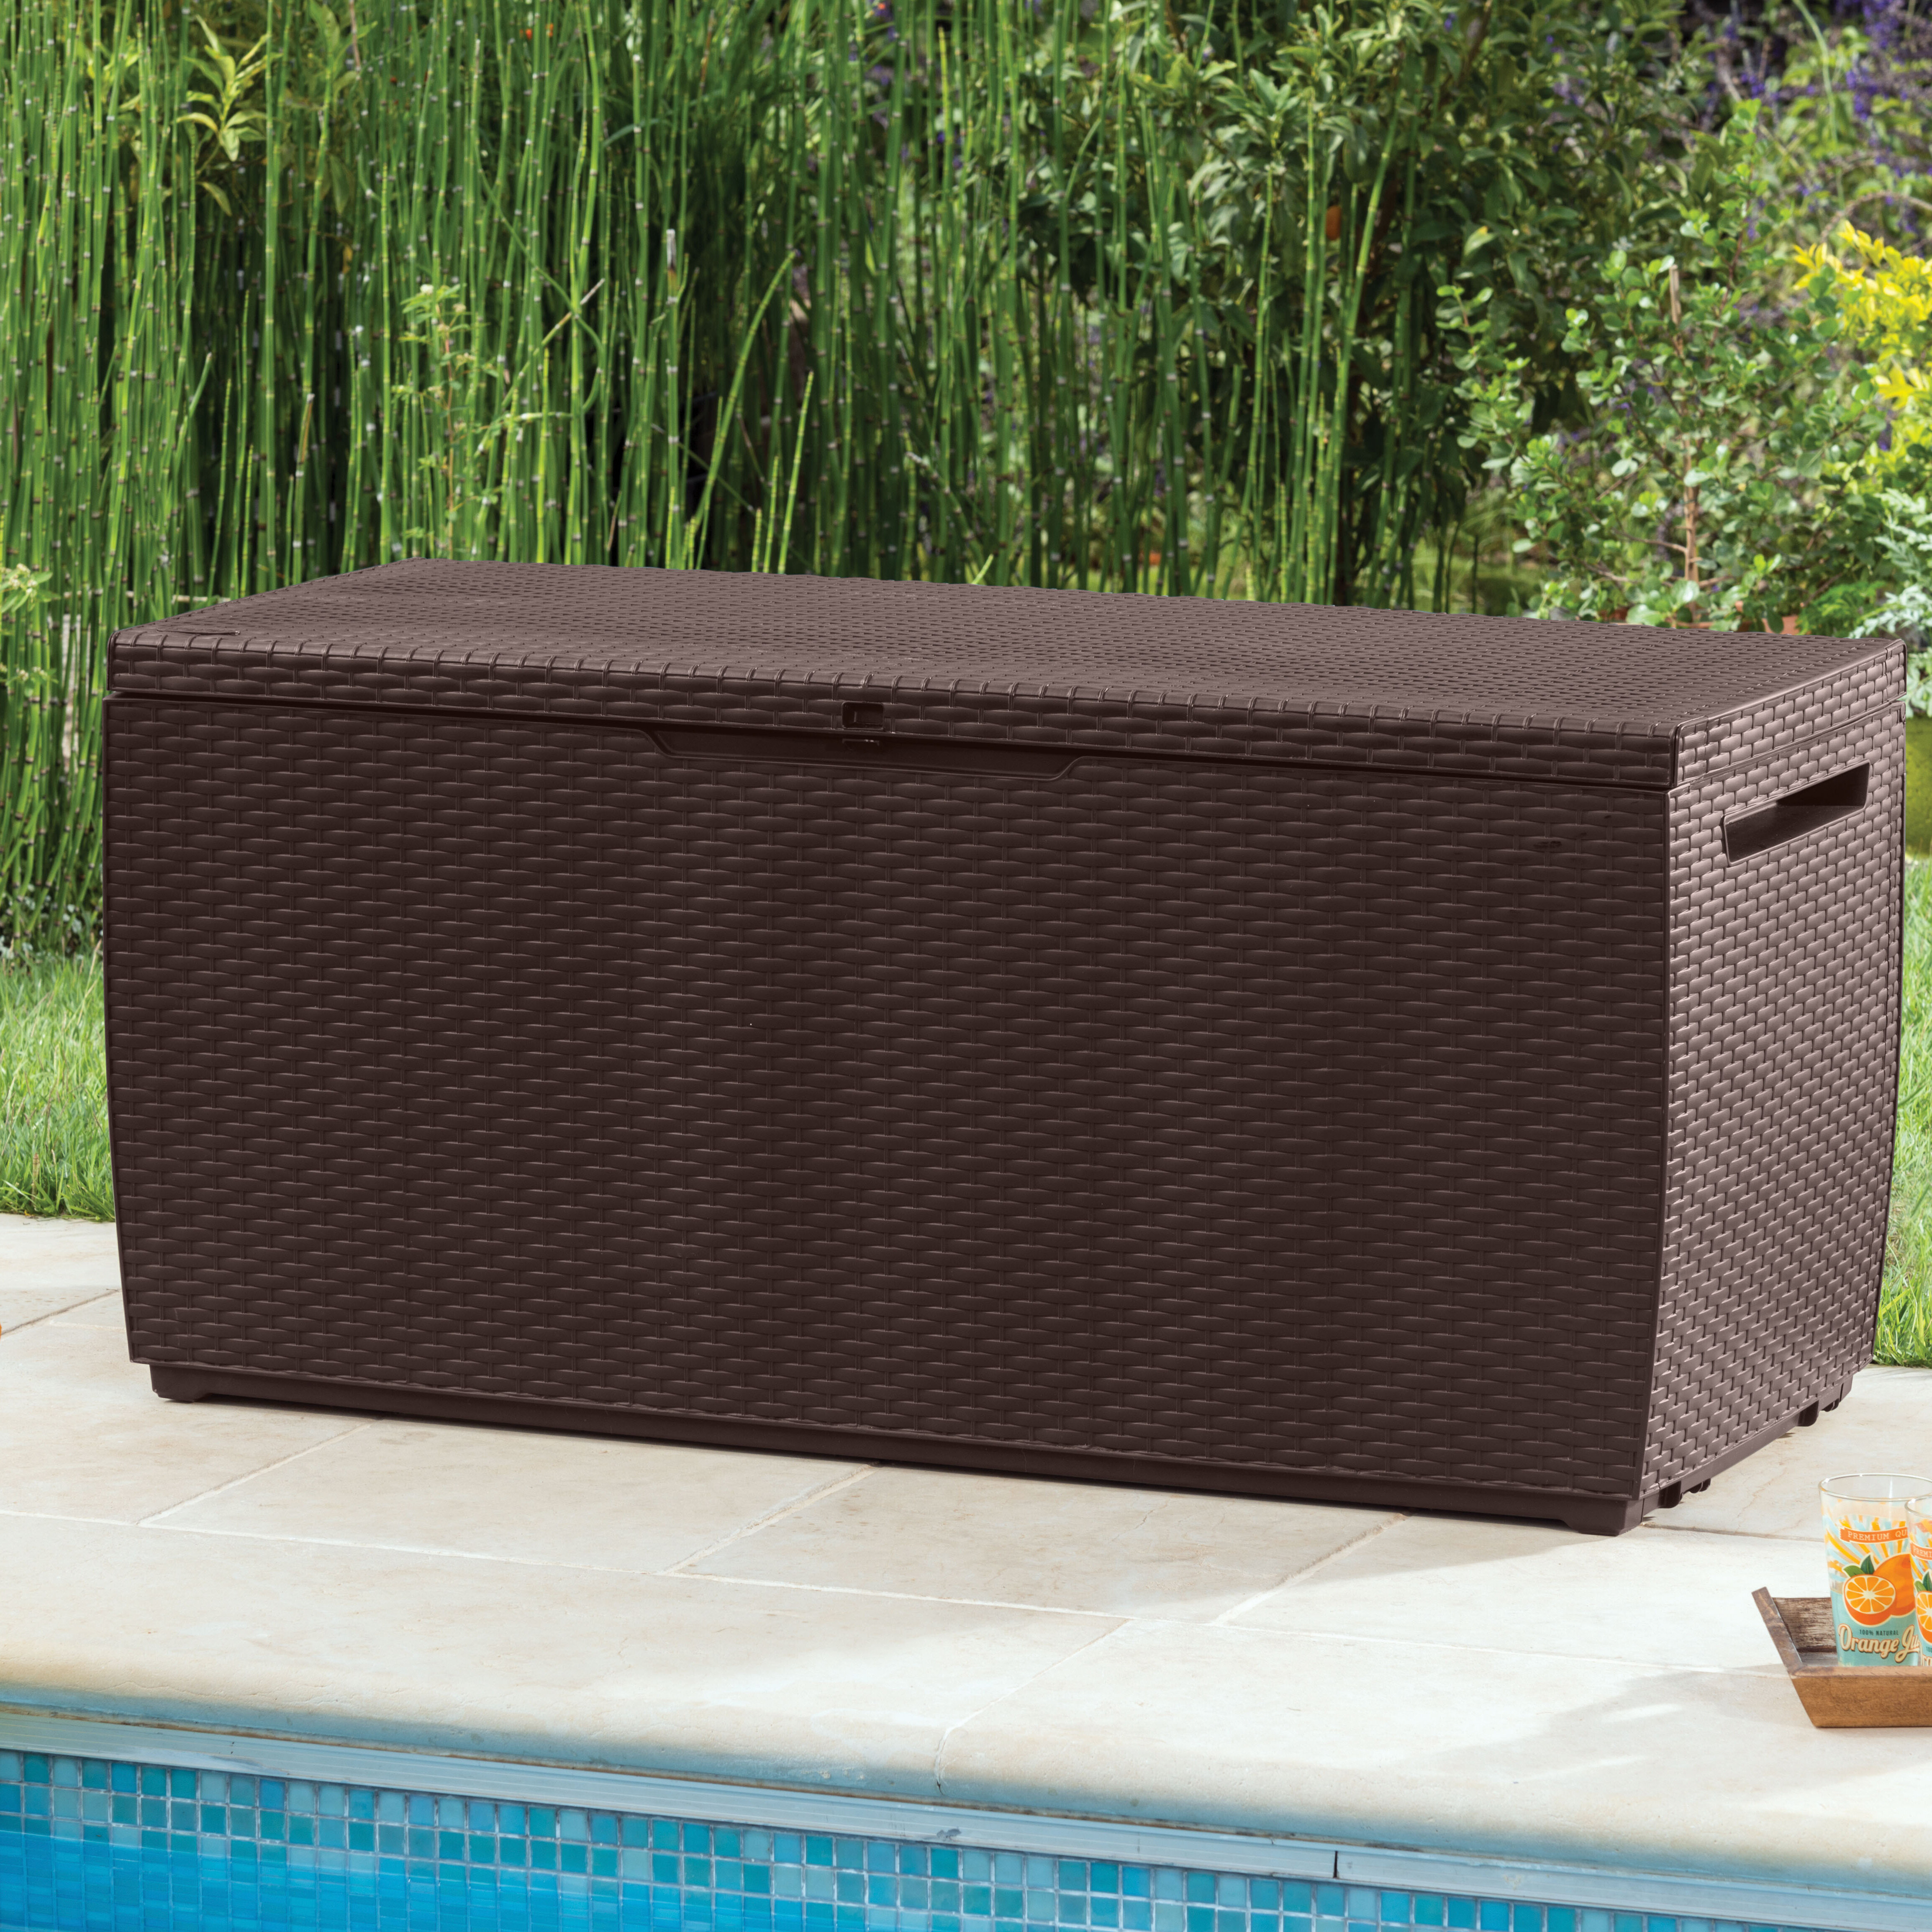 overstock bench home keter free gallon deck storage garden product shipping comfy box today resin